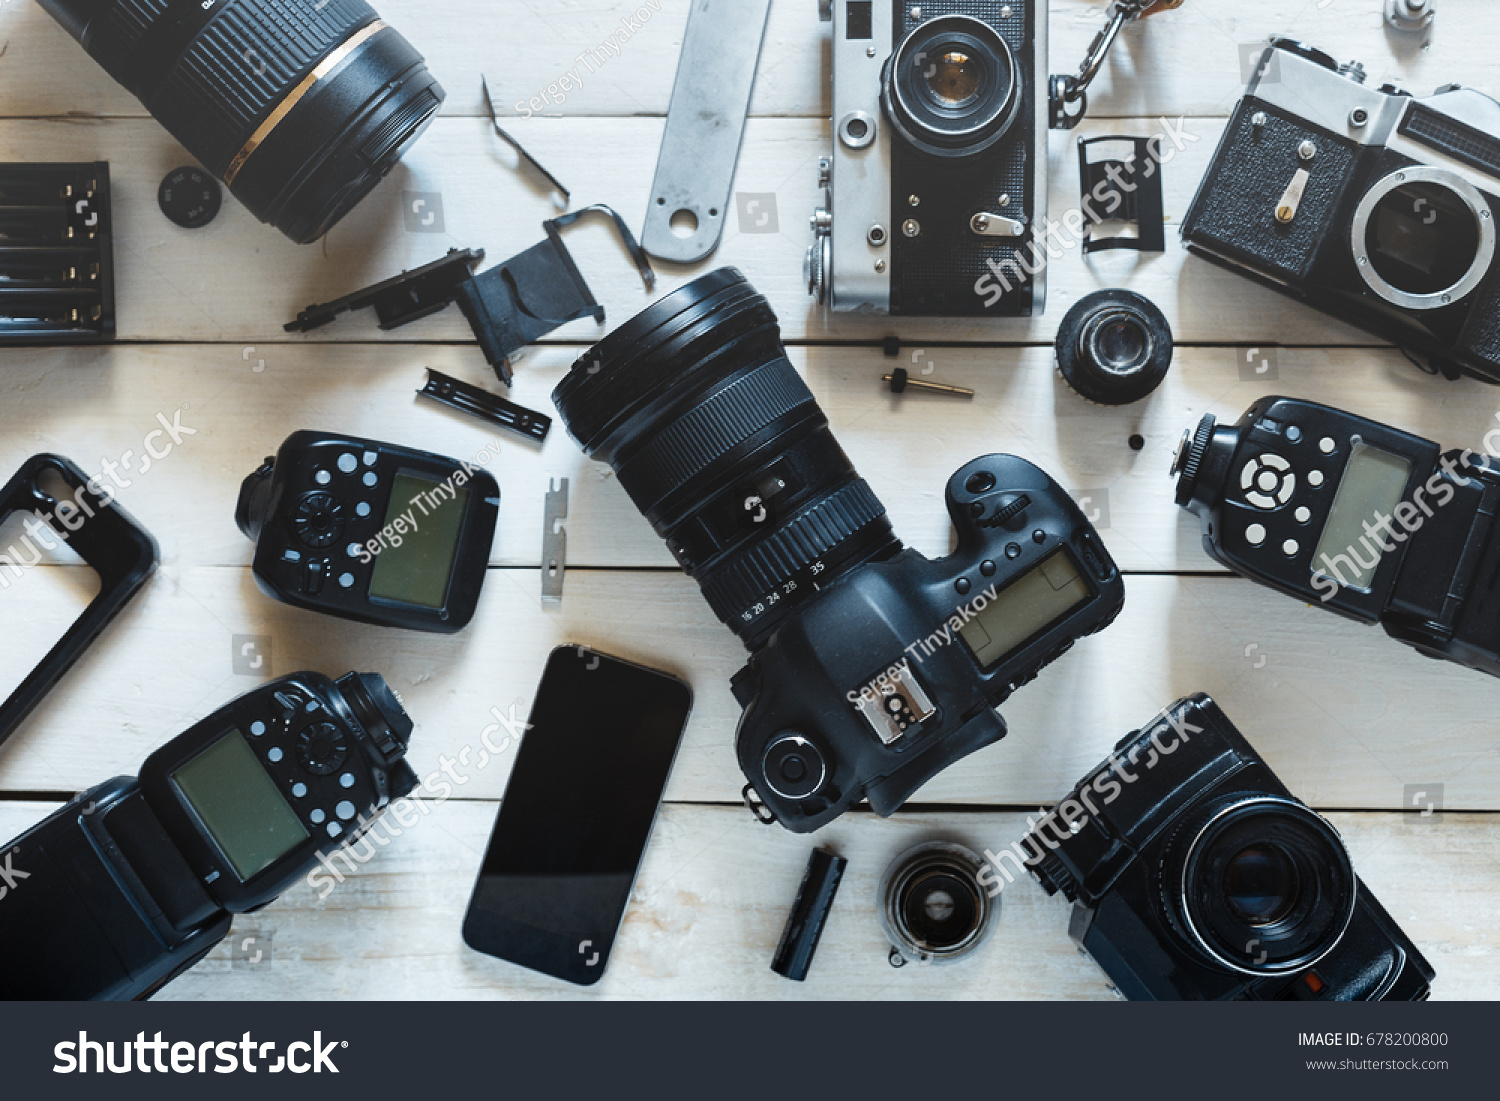 Vintage Film Camera, Digital Camera And Smartphone On White Wooden Background Technology Development Concept. Top View #678200800